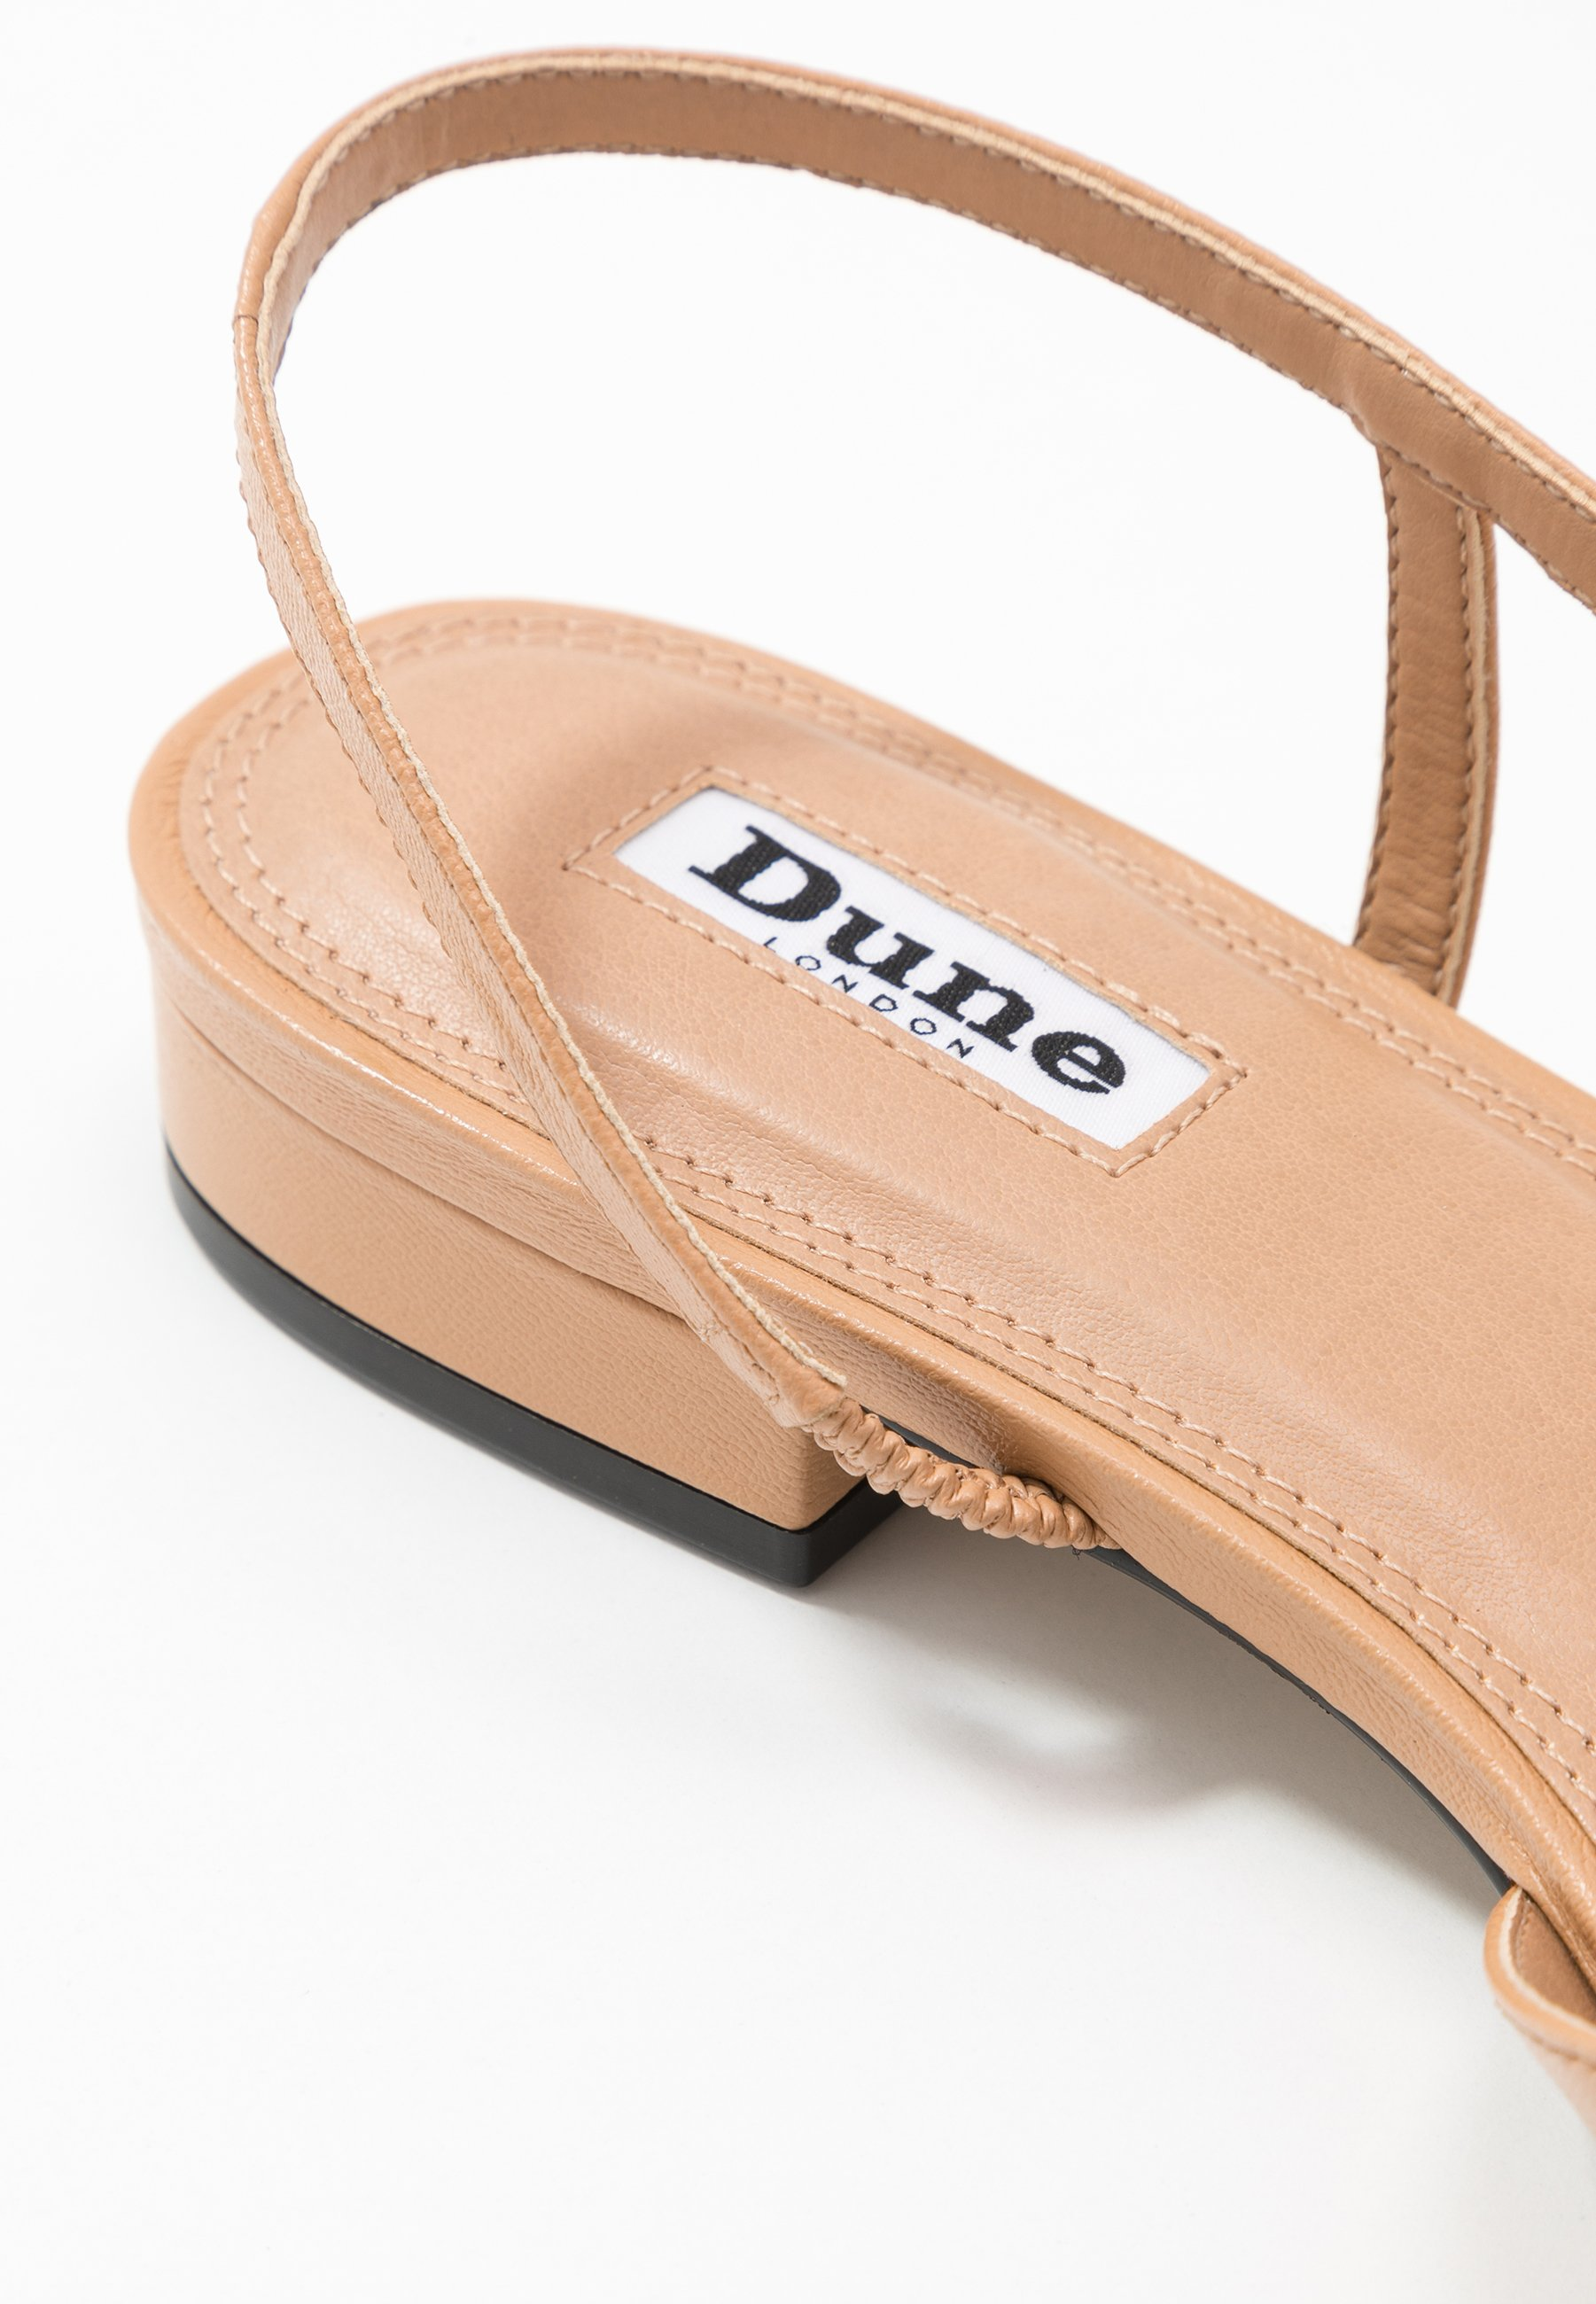 Latest Collections 2020 Cool Women's Shoes Dune London CORALLINA Slingback ballet pumps camel yxt3NhA03 gelgbqisv